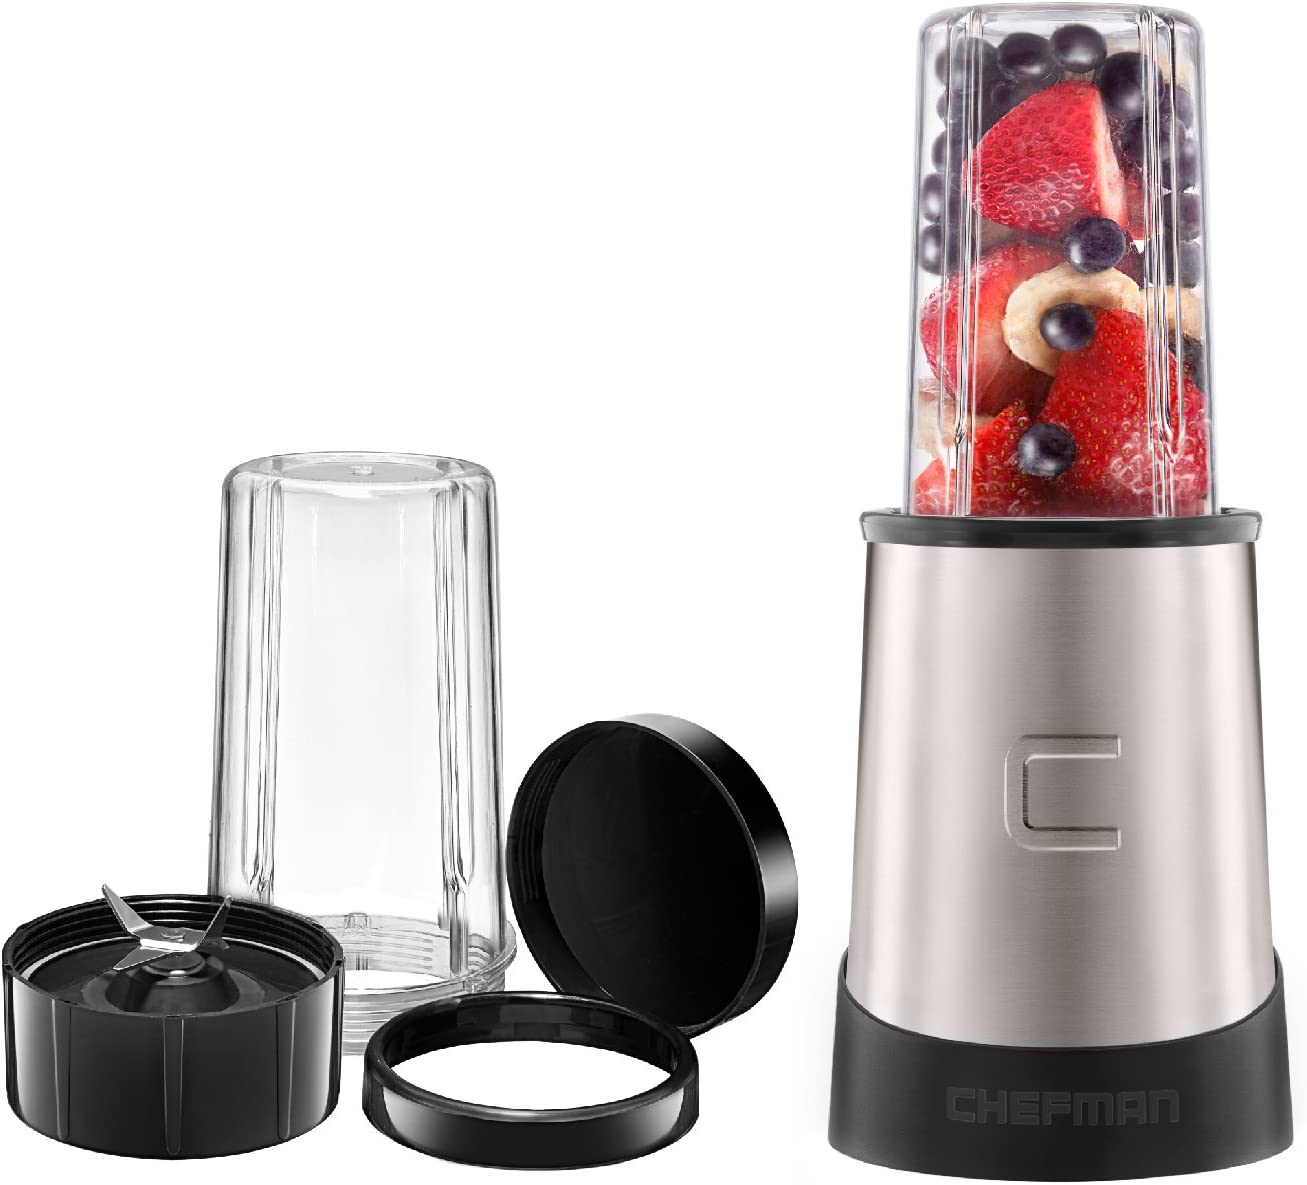 Chefman Personal Ultimate Kitchen Blender Quick Portable Blending of Shakes, Smoothies, Baby Food & Juice, 2 Travel Cups & Drinking Rim,6-Piece Set,Dishwasher-Safe Stainless-Steel, Black